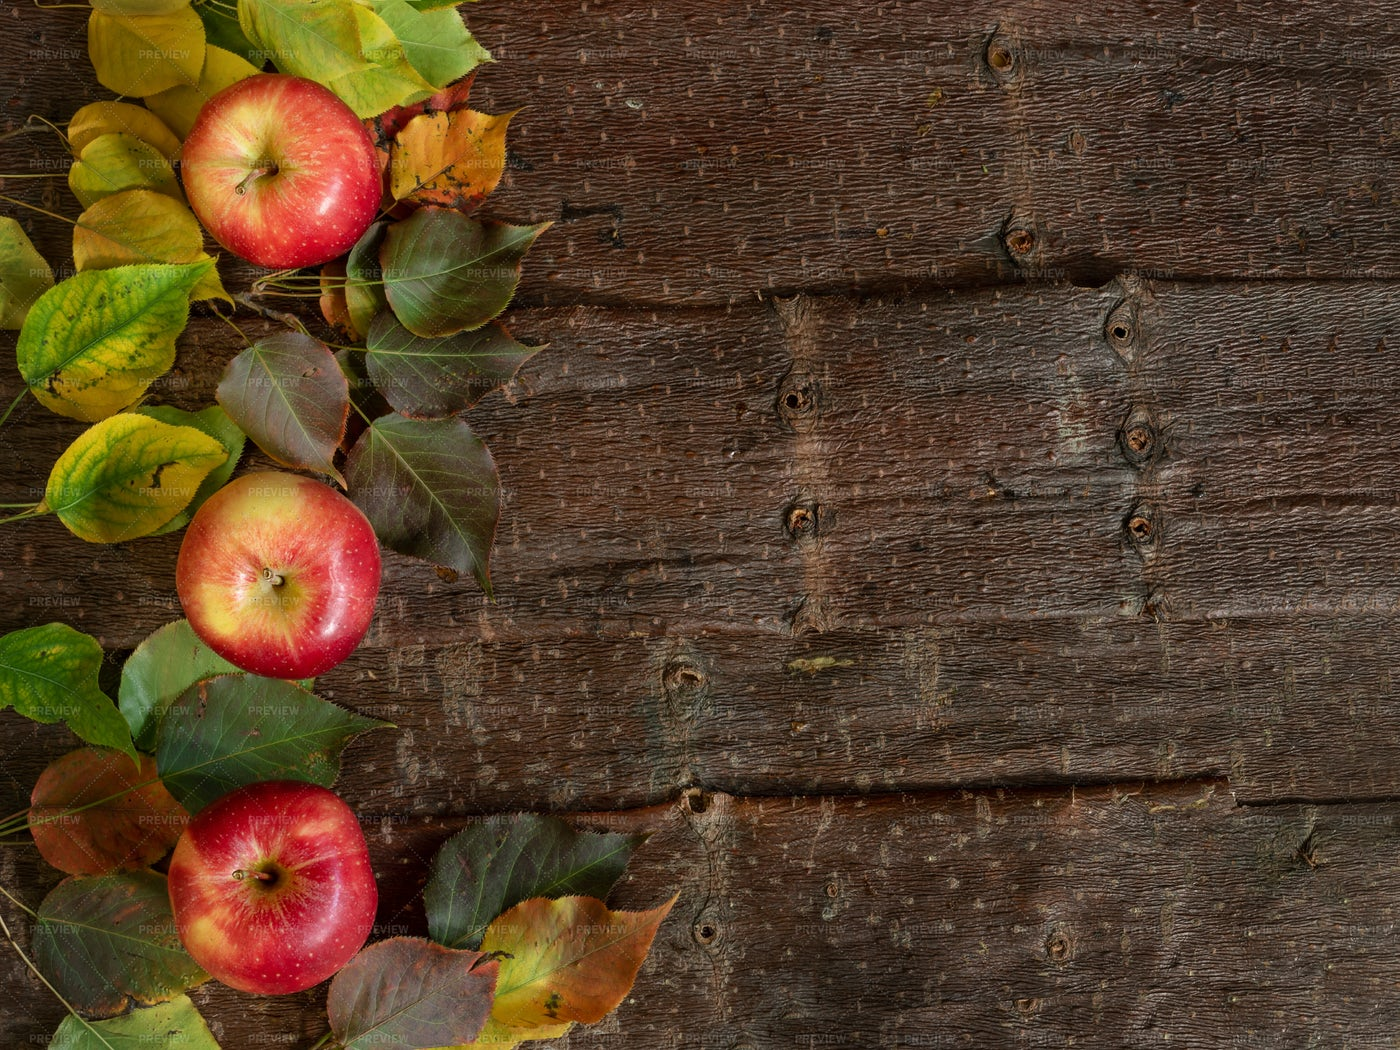 Fall Wooden Background With Apples: Stock Photos